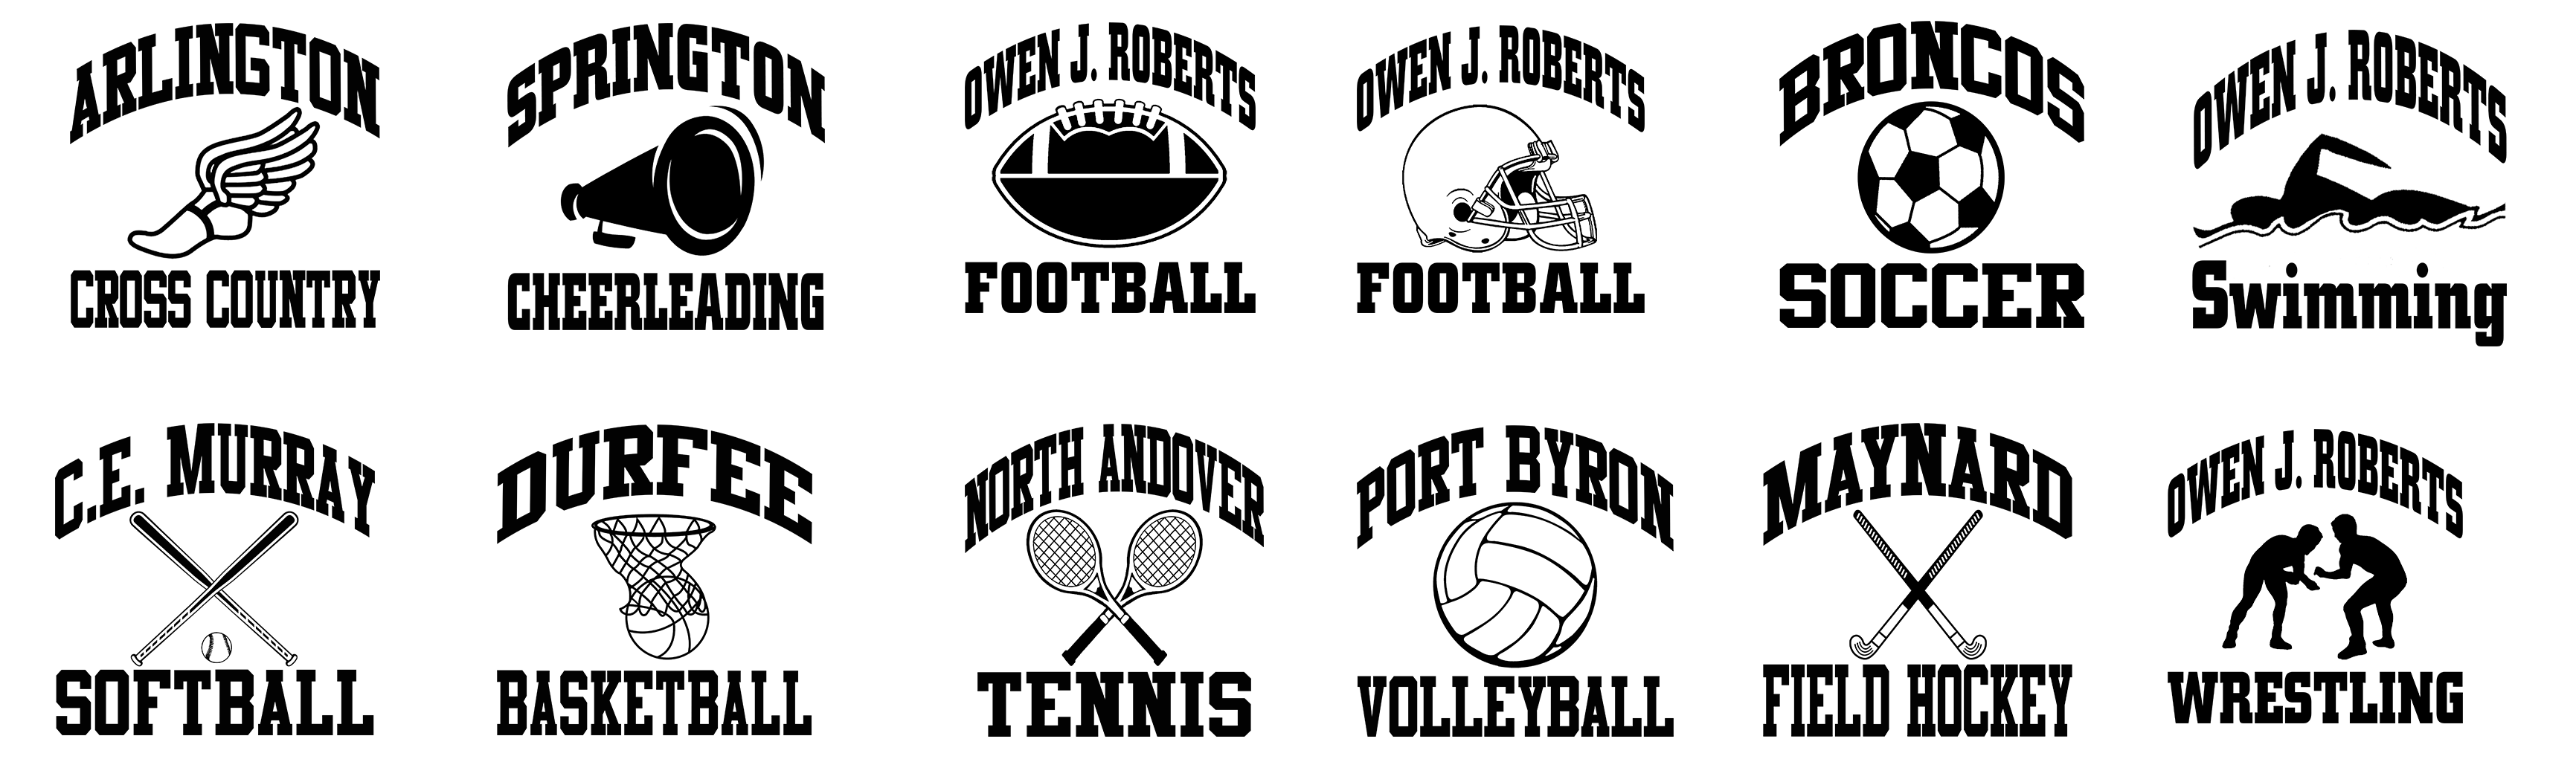 Logo styles showing various sports